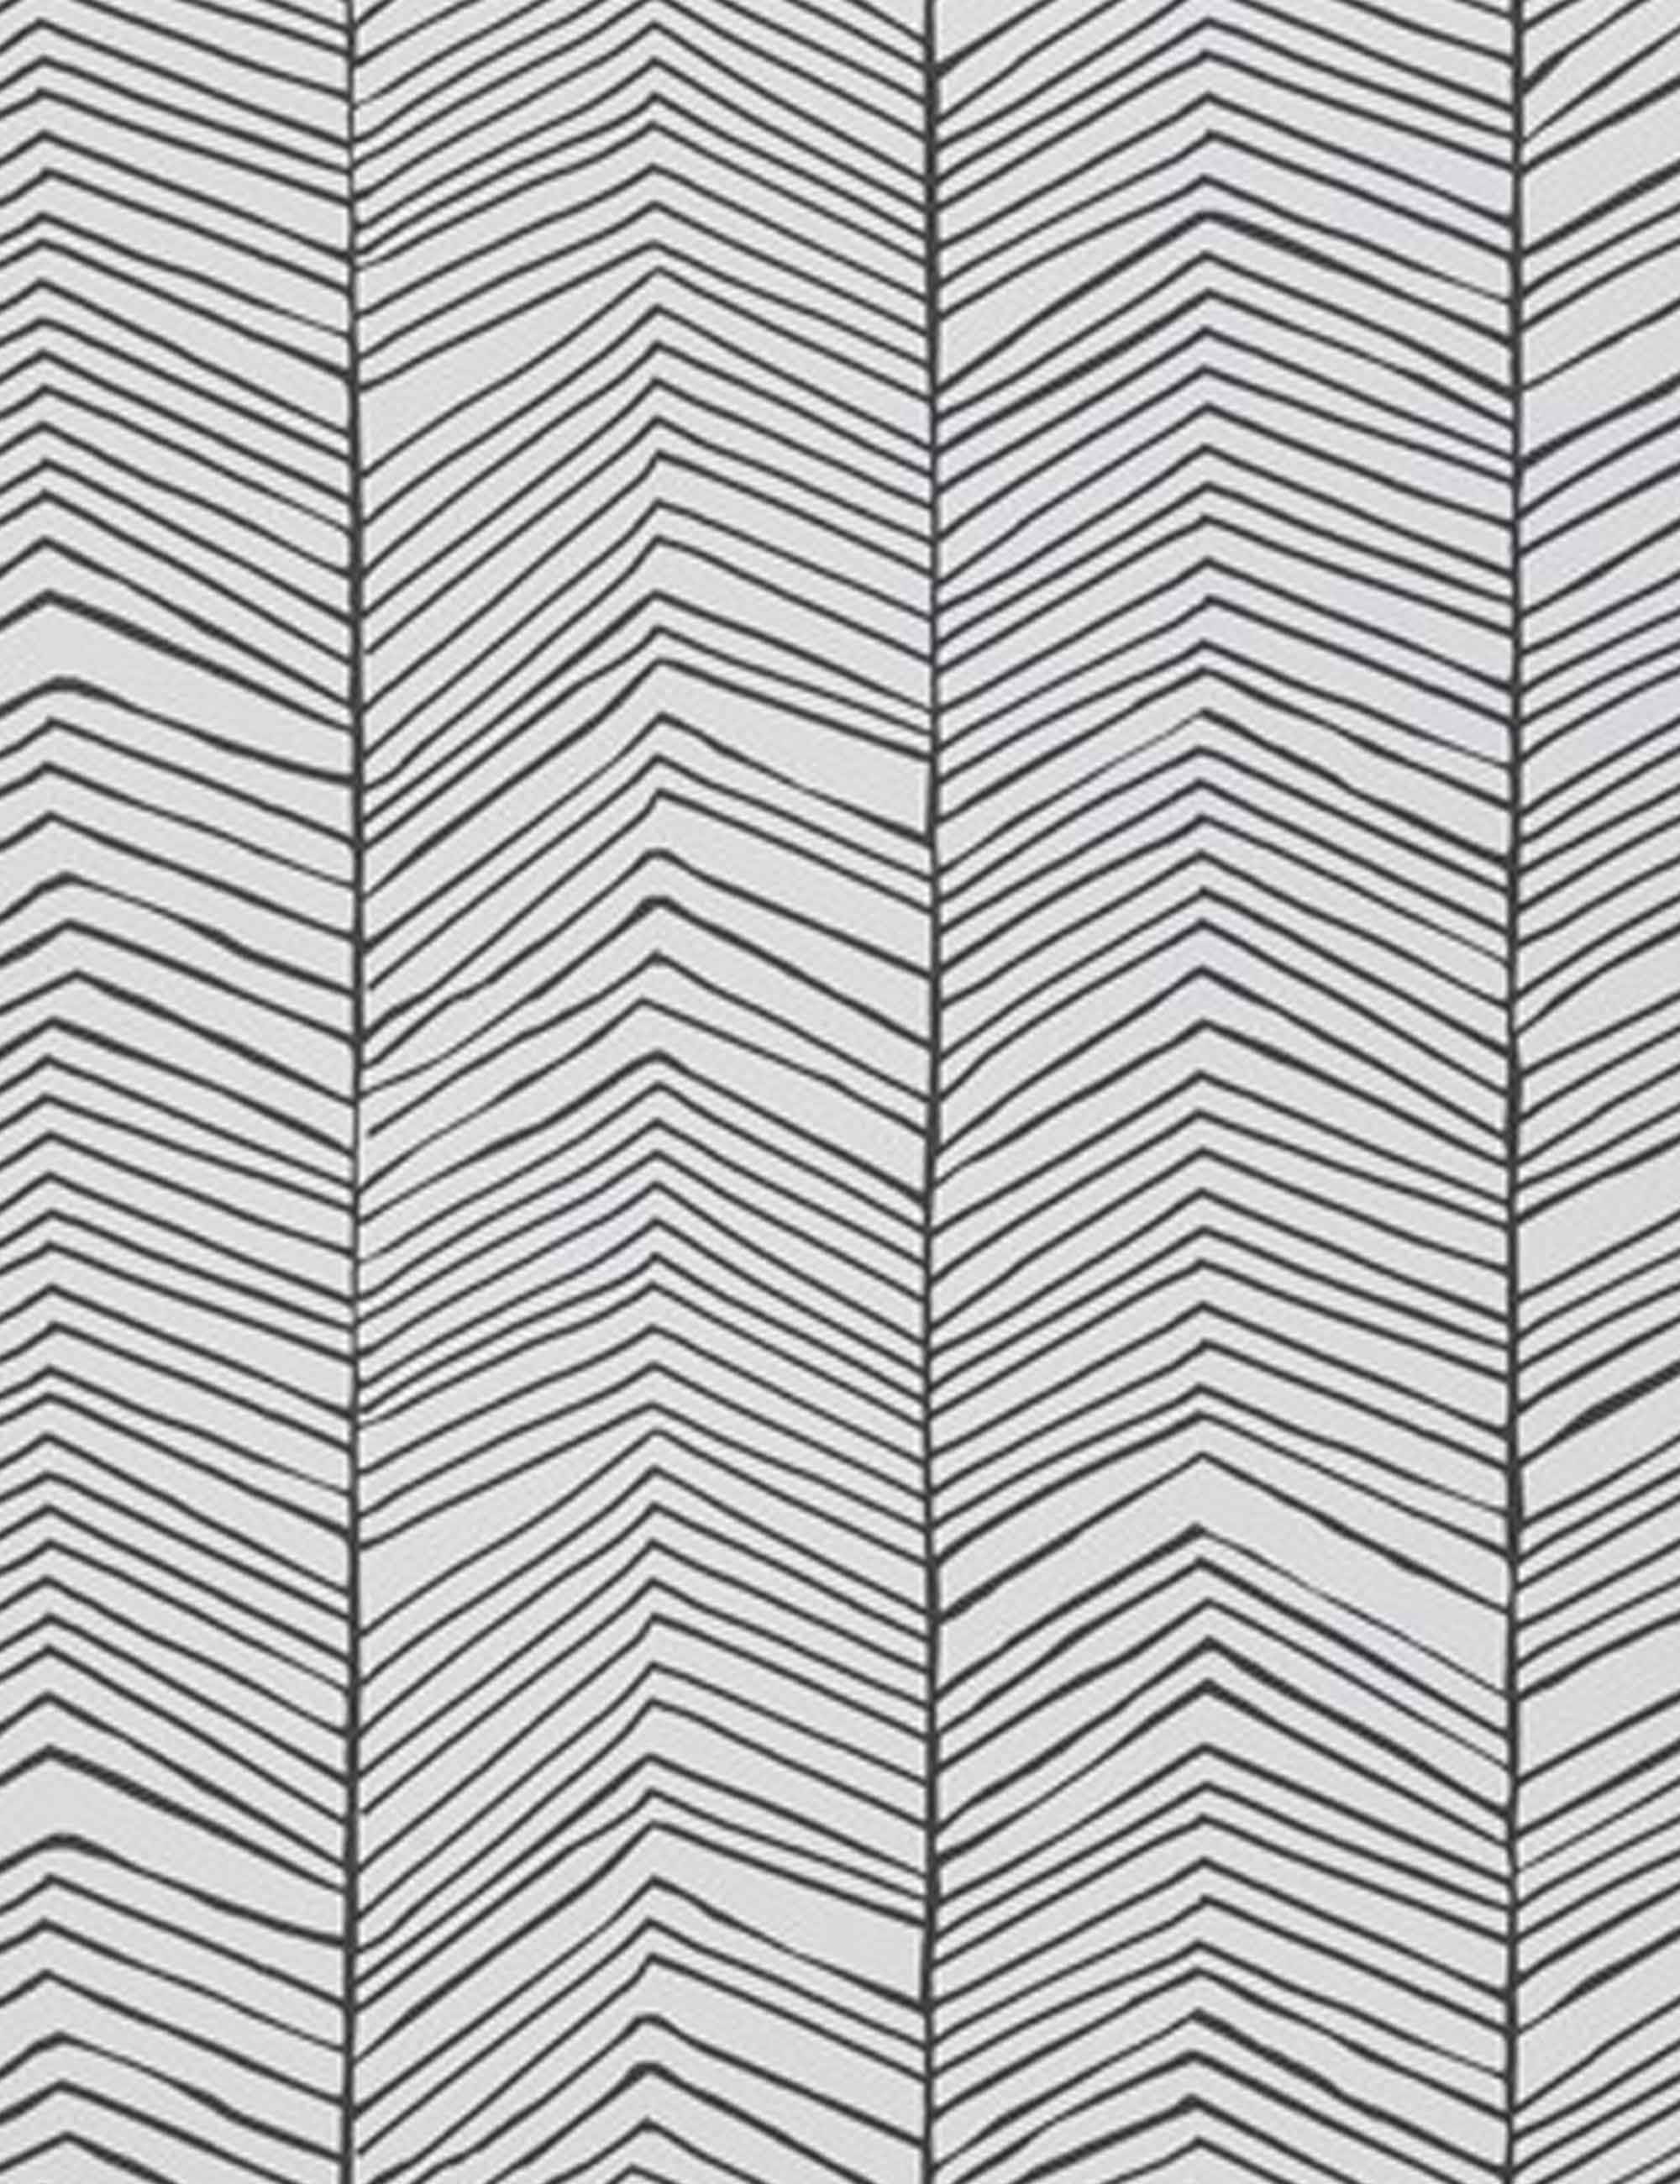 Fun And Beautiful Easy To Hang Herringbone Wallpaper Is Sure To Spice Up Your Home Or Workspace In No Time An Affordable Add Interieur Interior Design Design